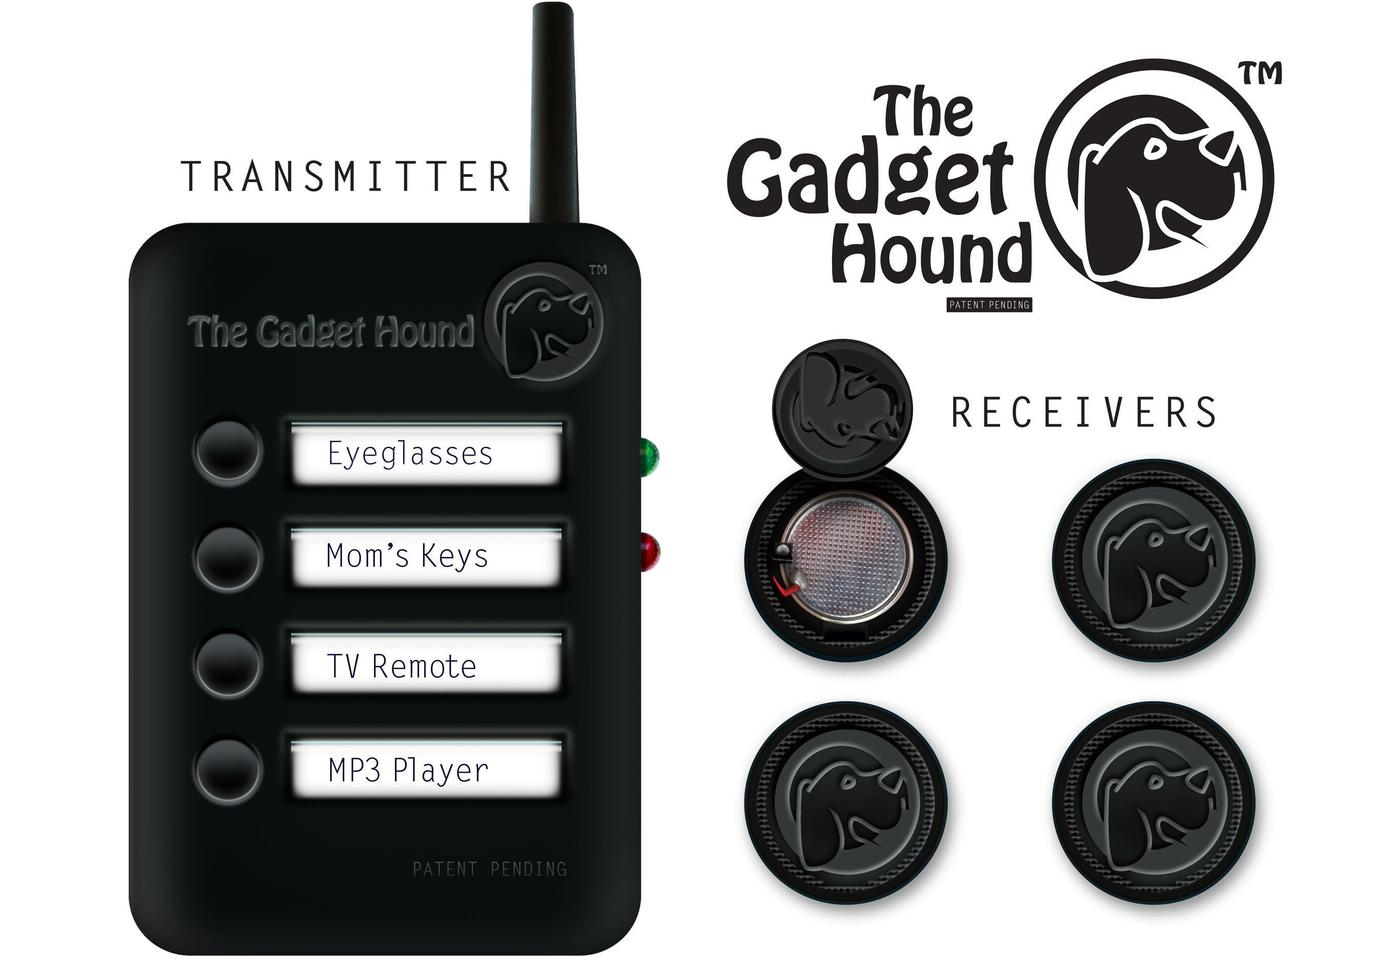 """The Gadget Hound follows the """"scent"""" to your lost belongings"""